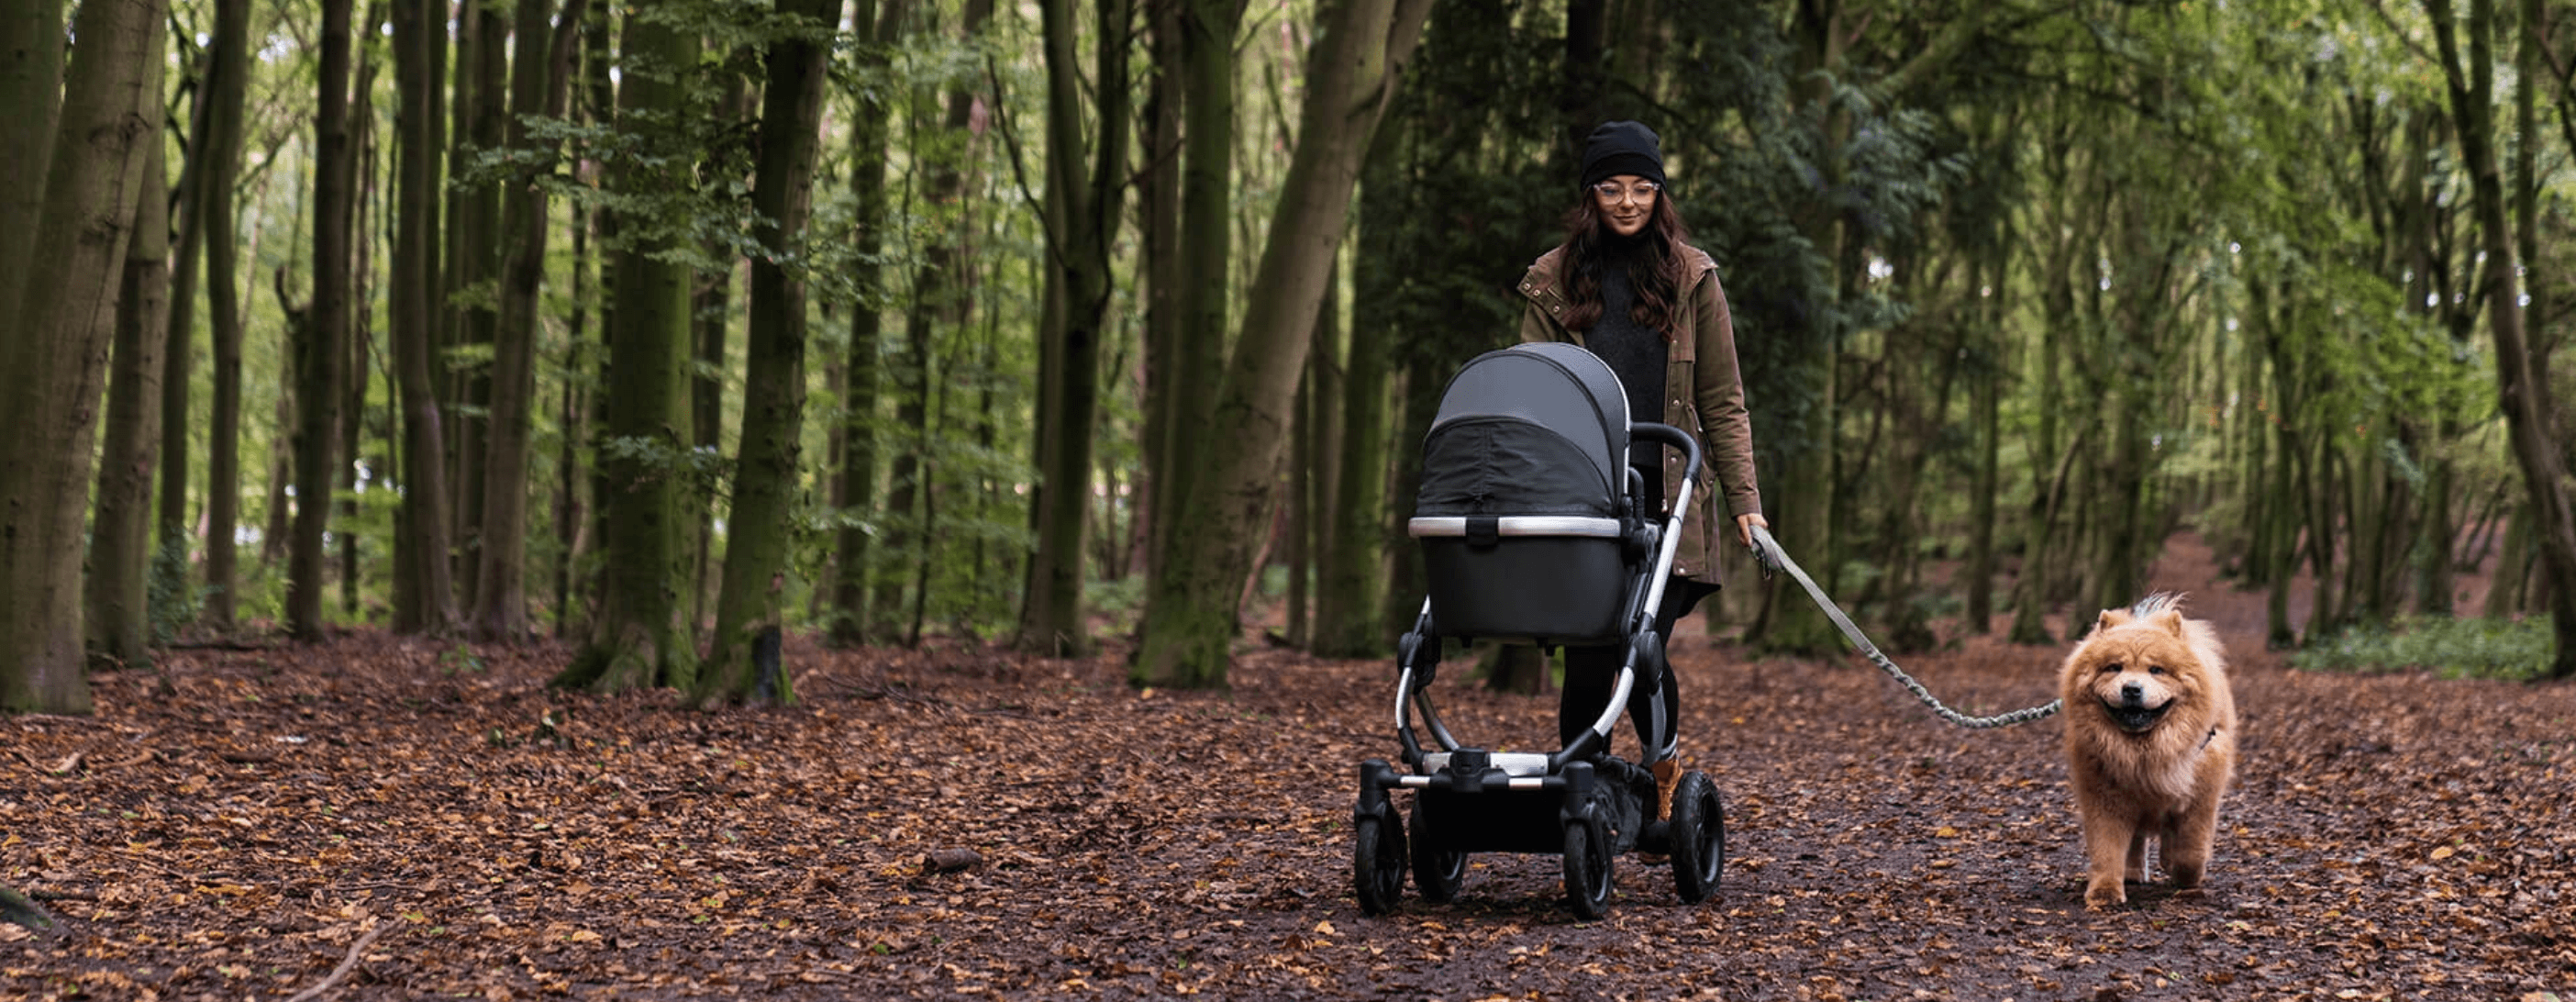 Little Pram - Online Pram Shop